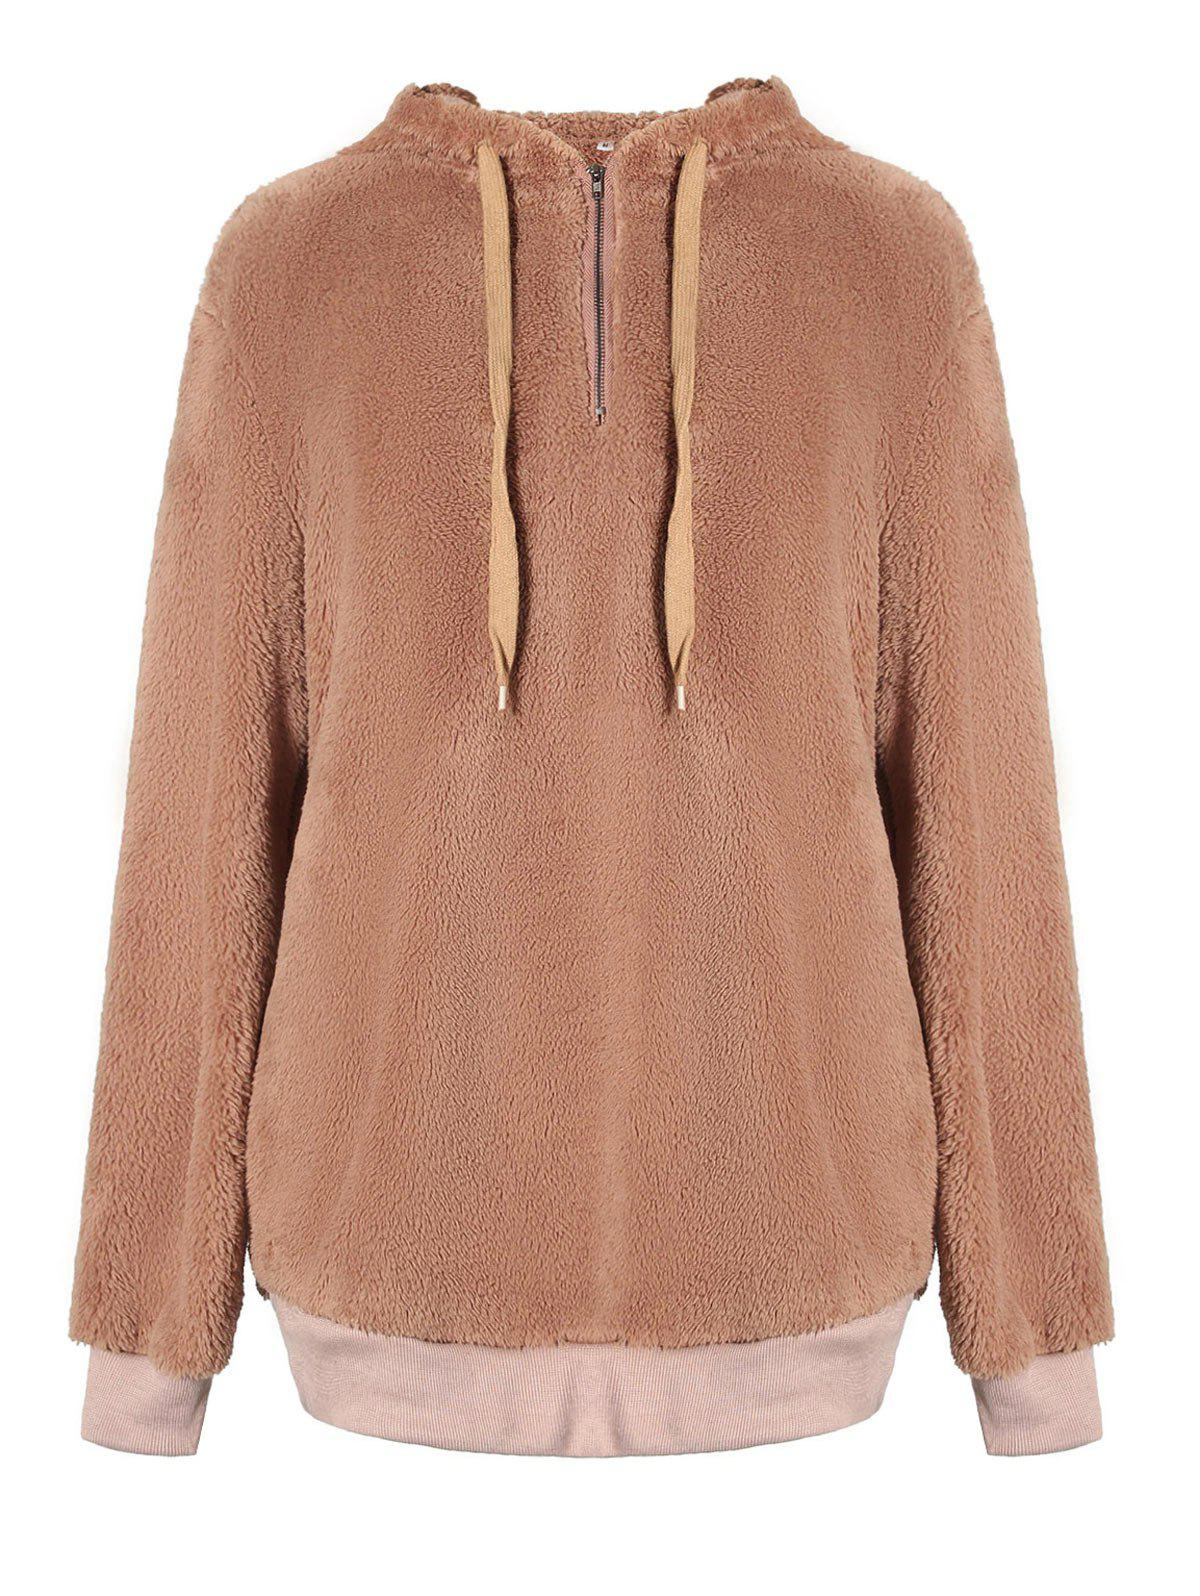 Drawstring Fuzzy Hoodie - LIGHT BROWN M